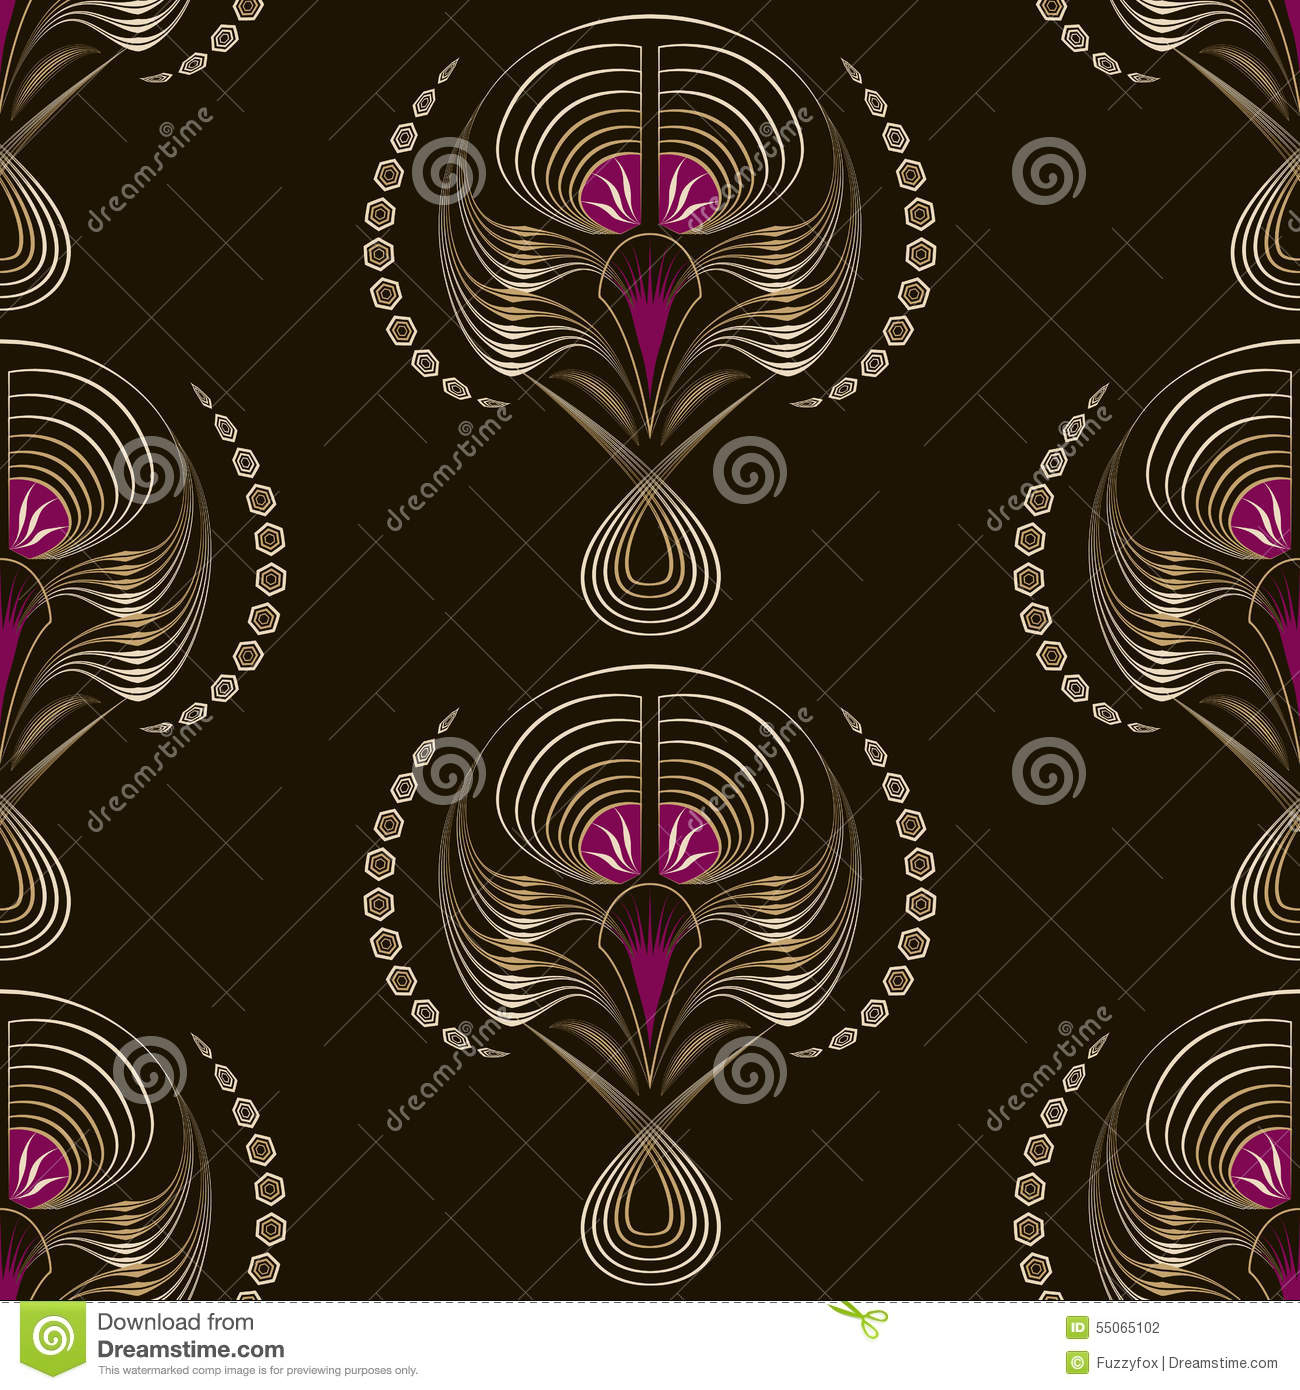 Seamless pattern art deco graphic ornament floral stylish for Deco graphic